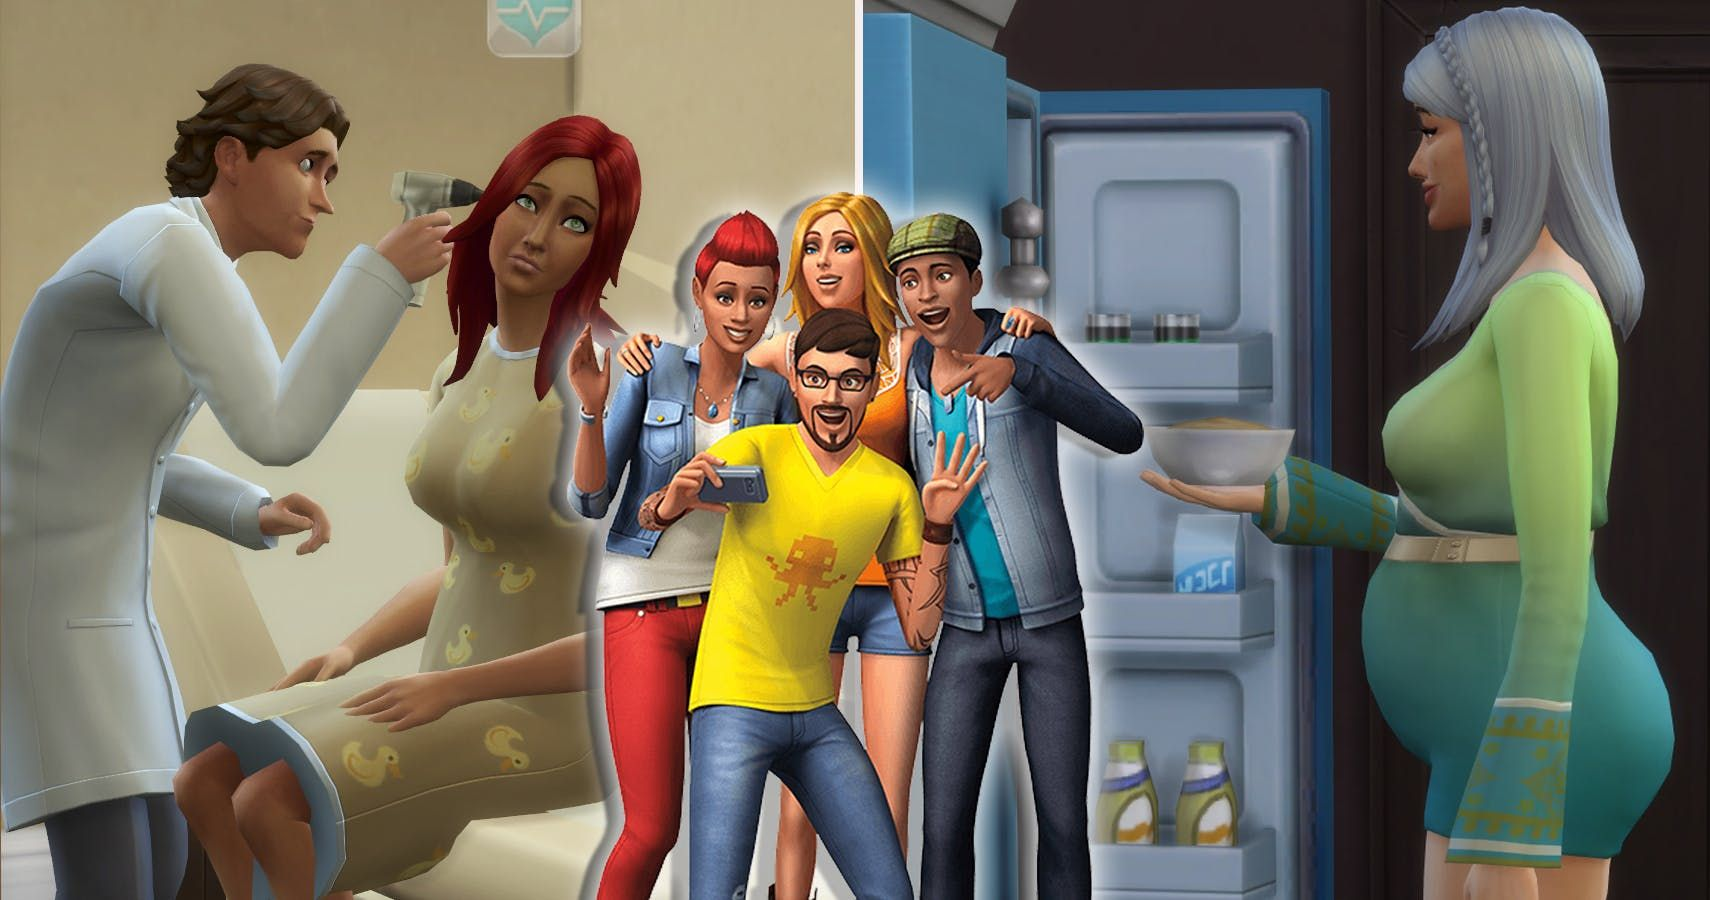 Sims 4 Get Famous: Social Media Influencer Career Guide